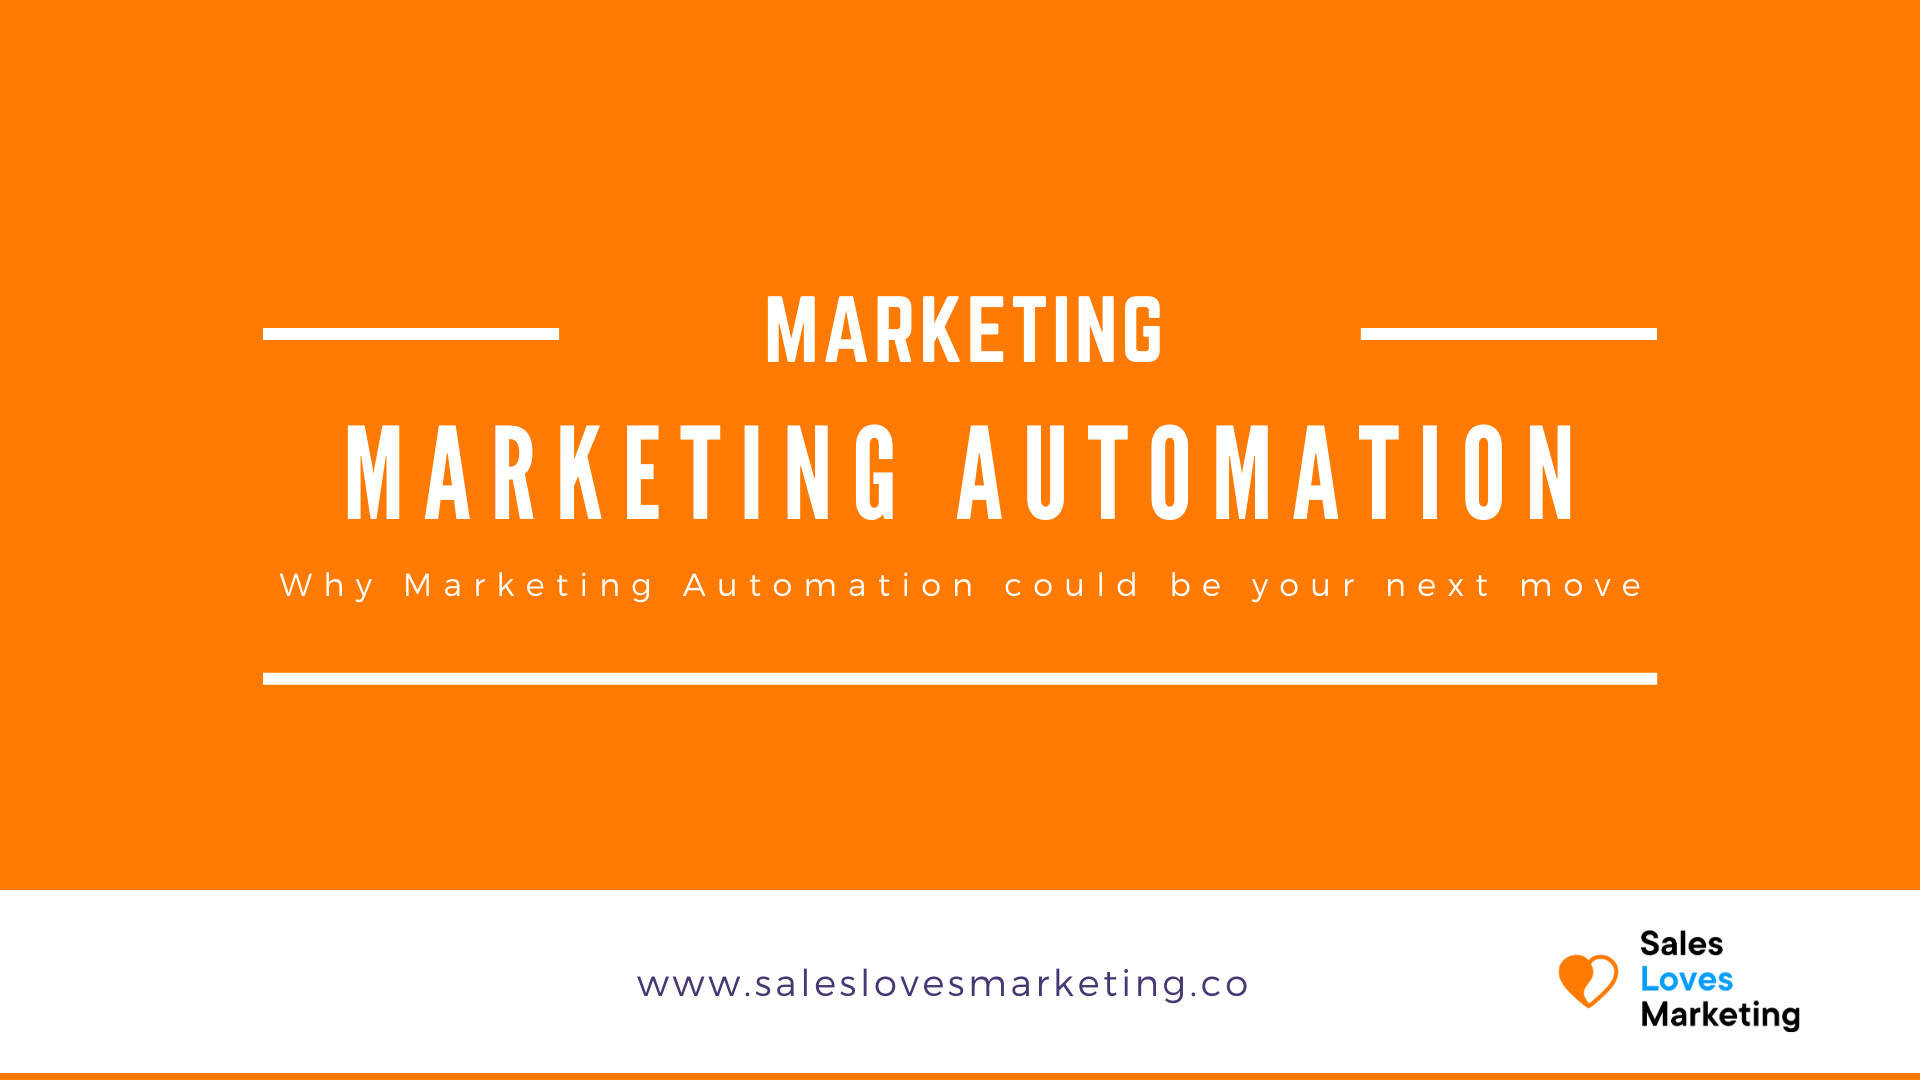 Why Marketing Automation could be your next big move to grow your business